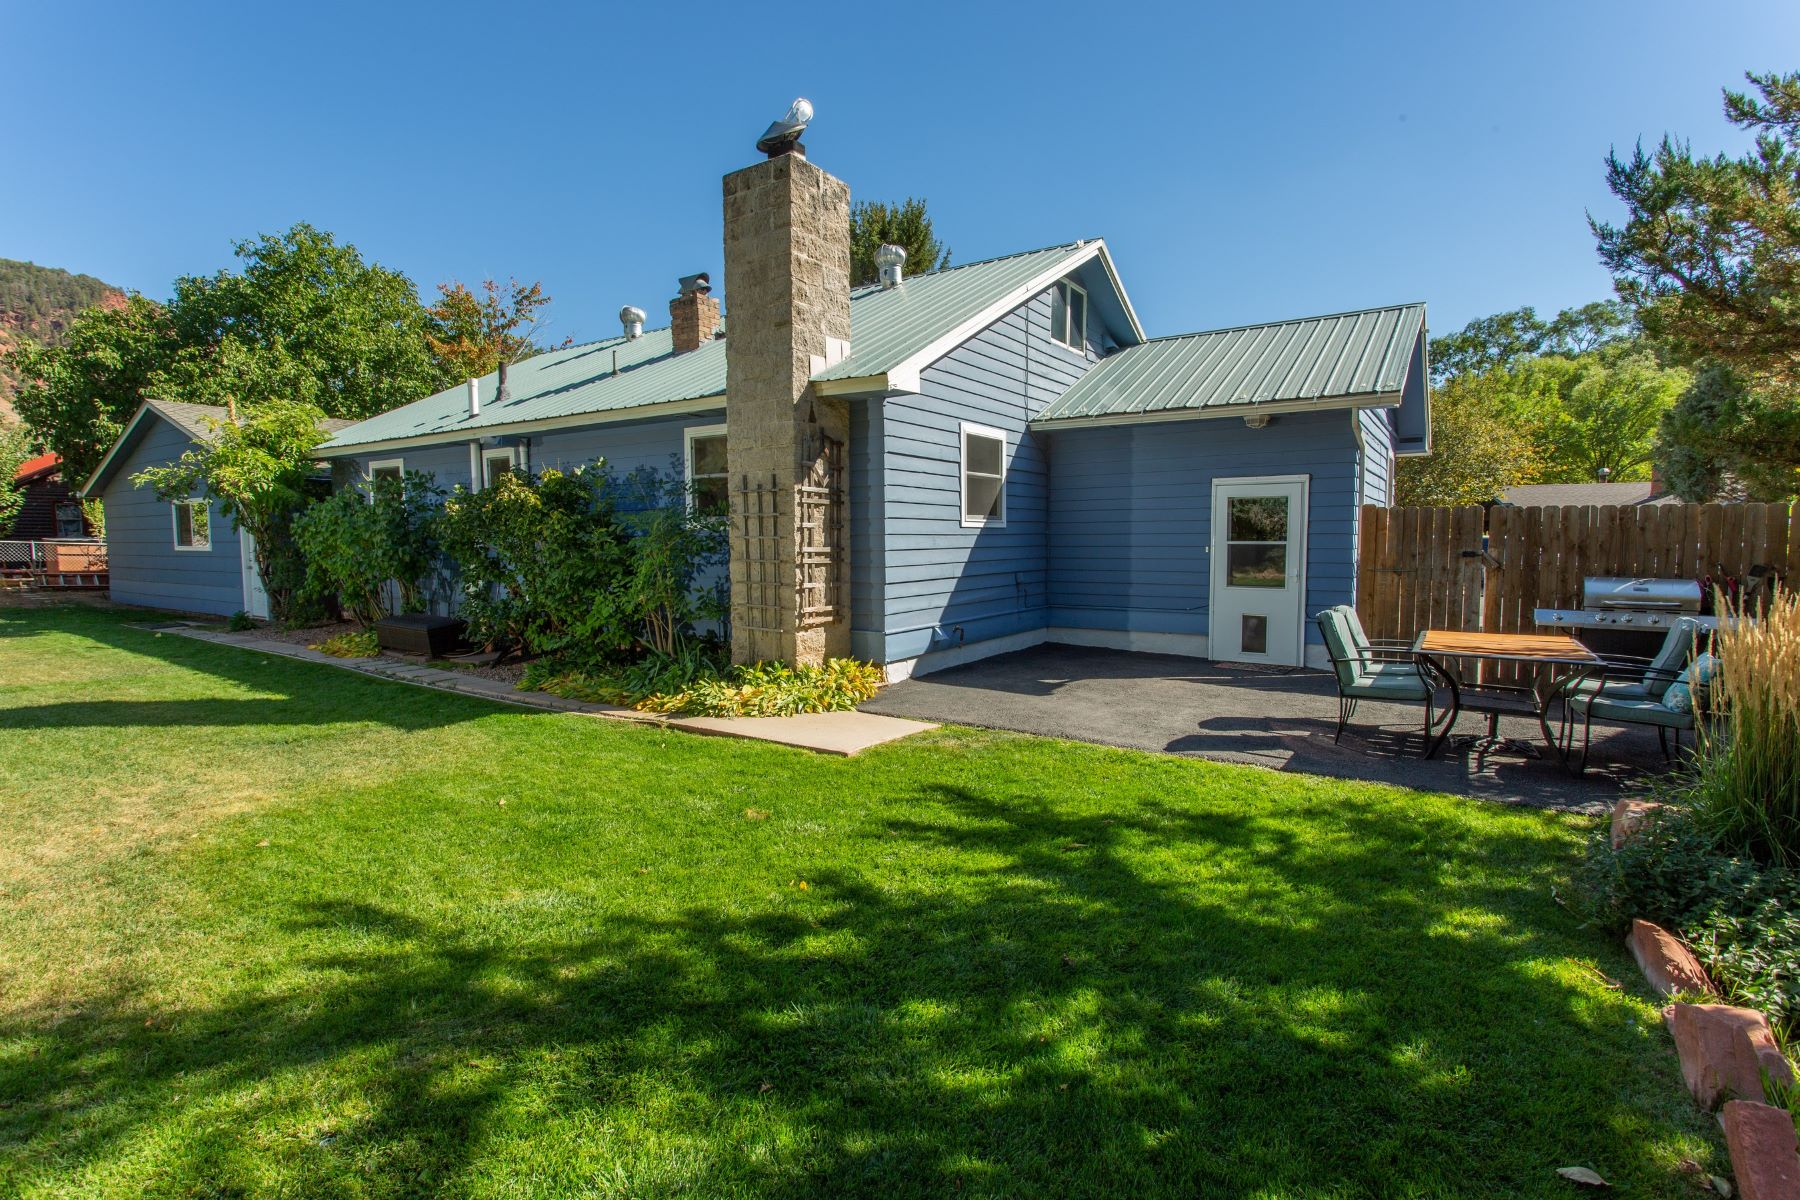 Single Family Home for Active at A hidden gem 413 32nd Street Glenwood Springs, Colorado 81601 United States